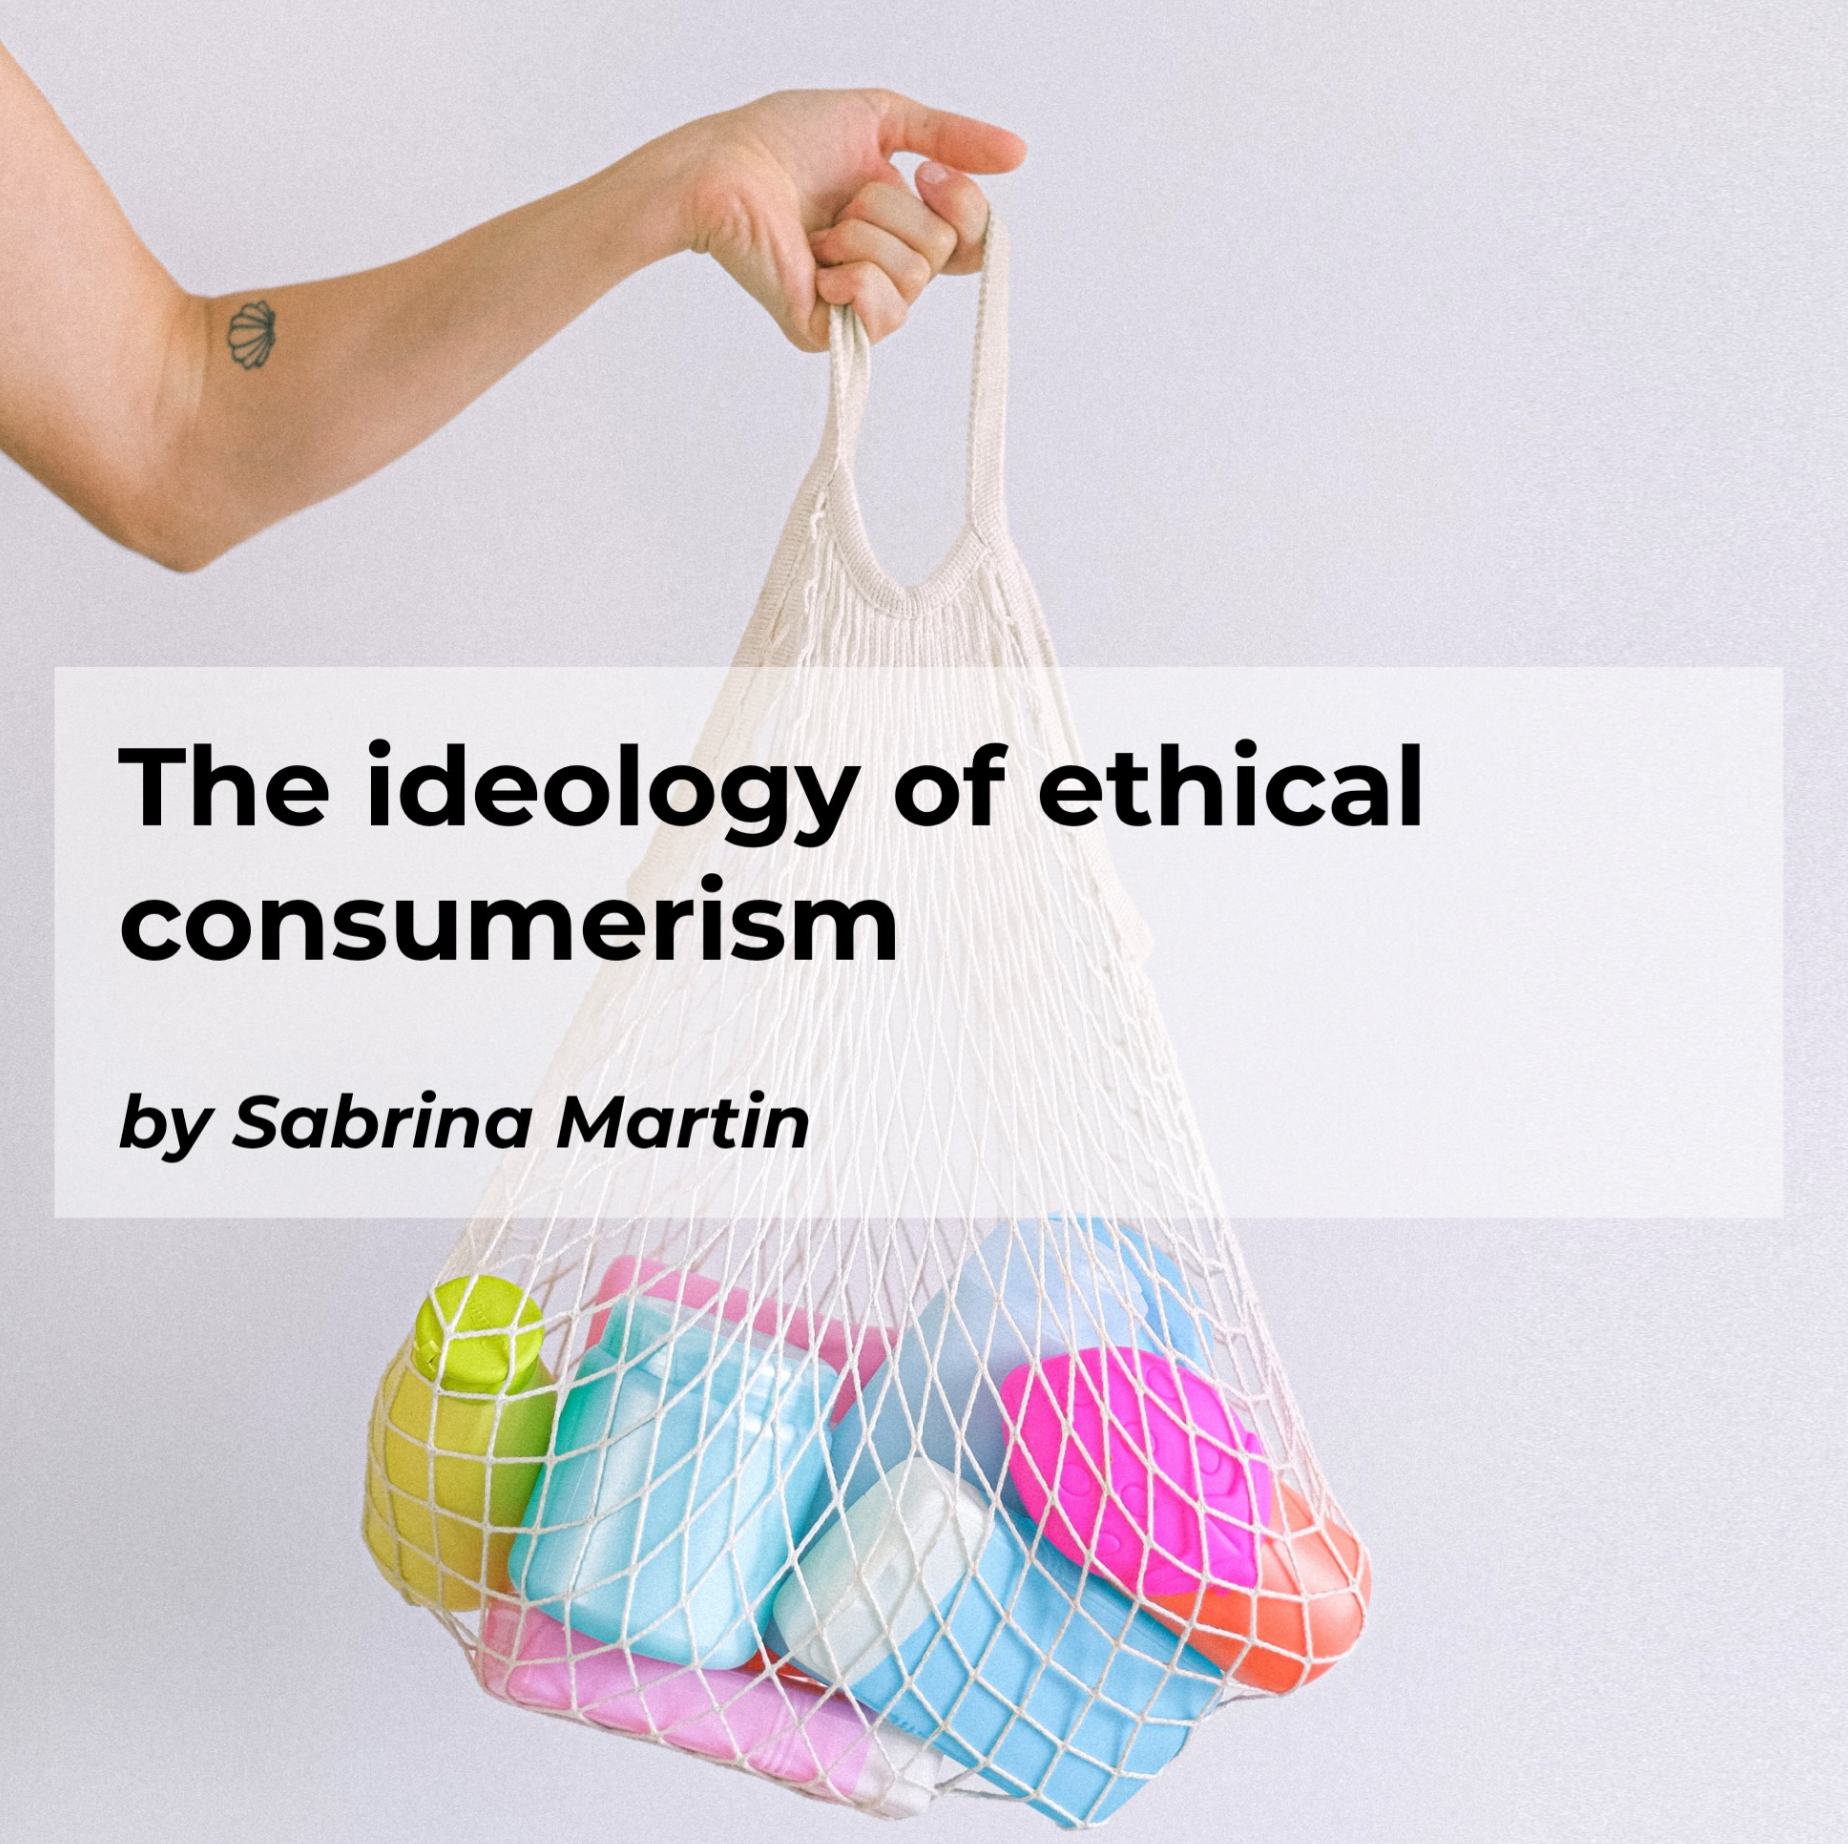 The ideology of ethical consumerism